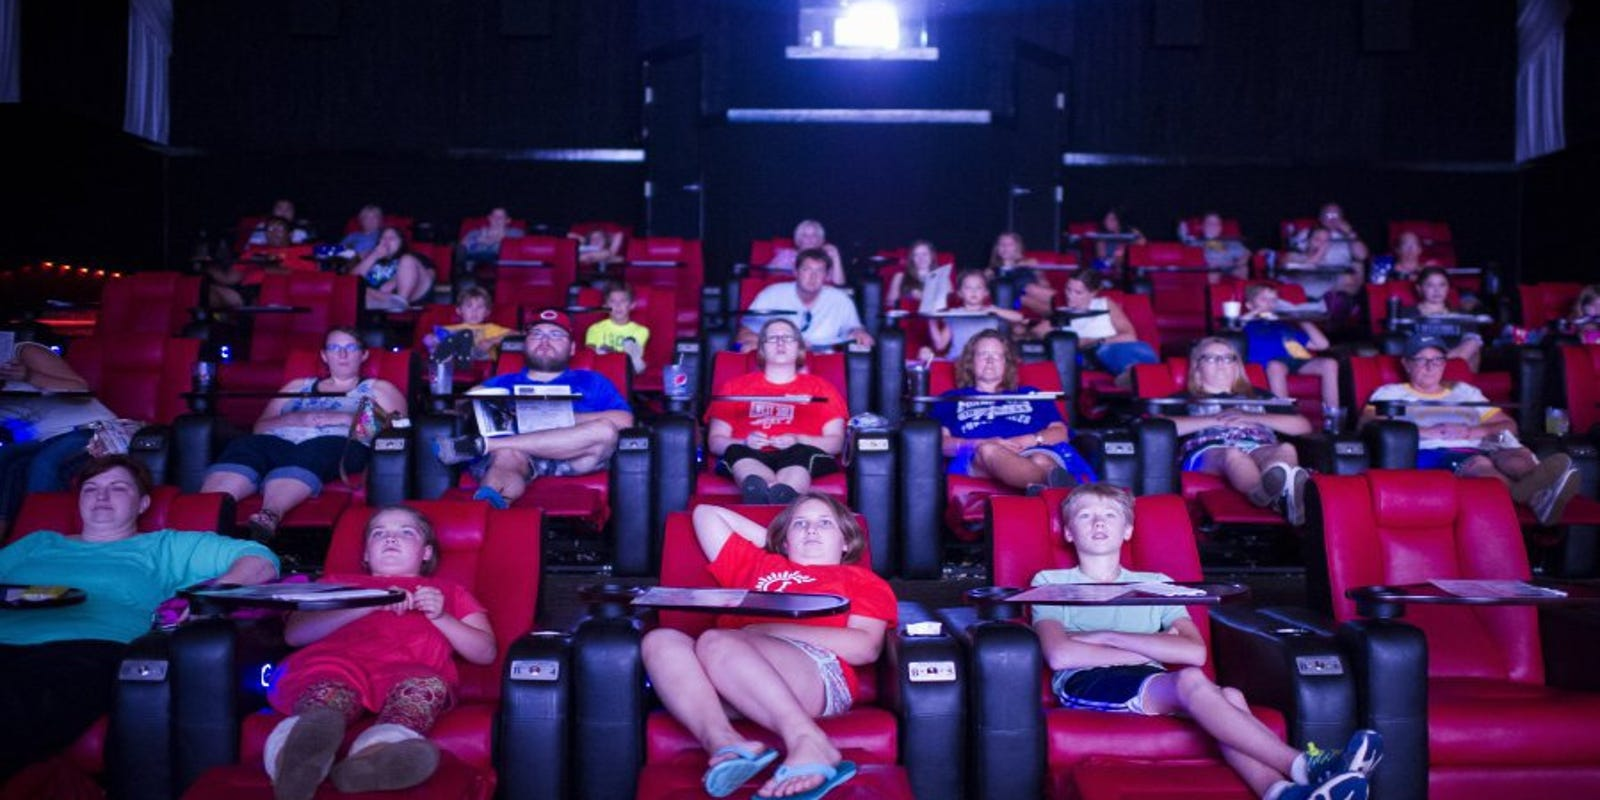 Enjoyable More Reclining Seats Popping Up In Local Movie Theaters Pabps2019 Chair Design Images Pabps2019Com